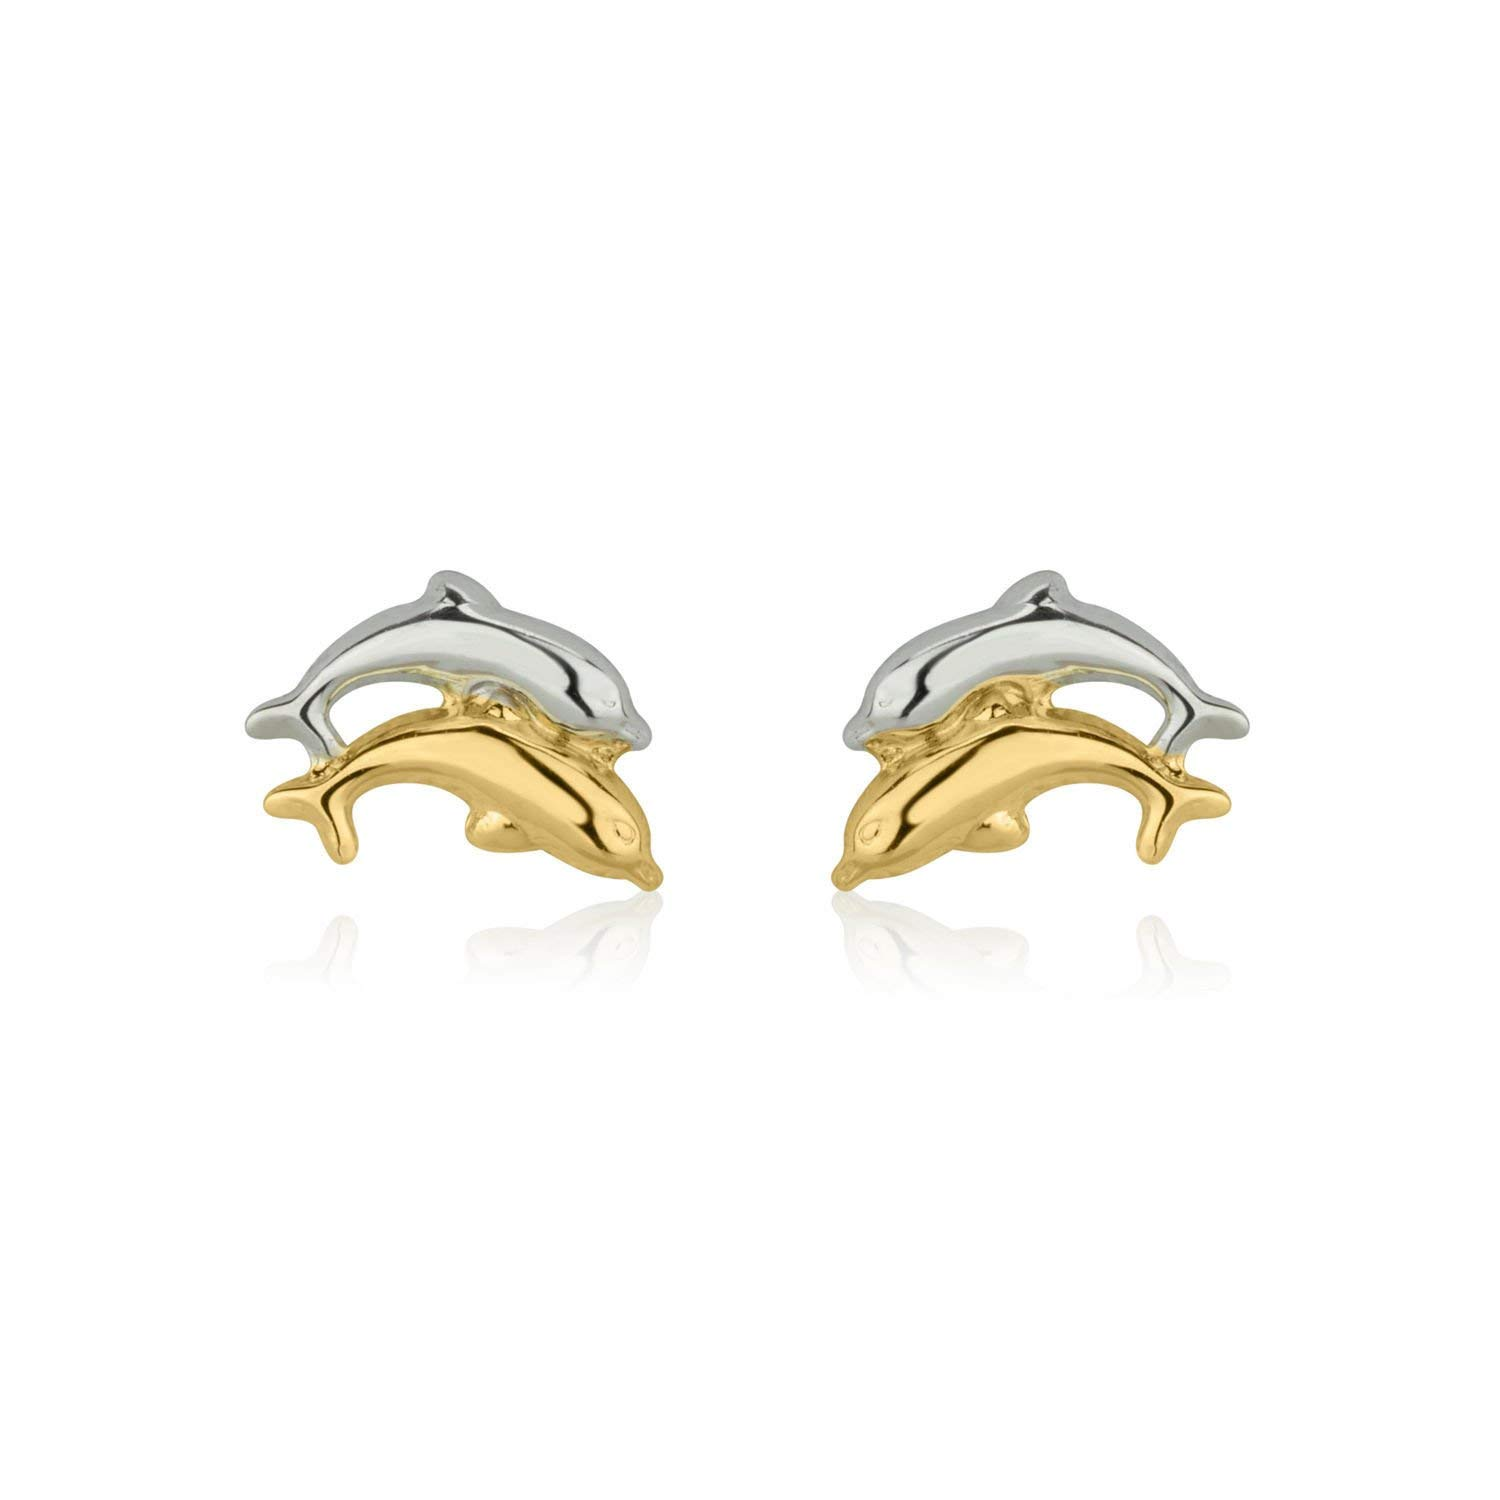 9df330a05 Get Quotations · 14K Solid White & Yellow Gold Dolphin Screw Back Stud  Earrings for Girls Kids Children Gift